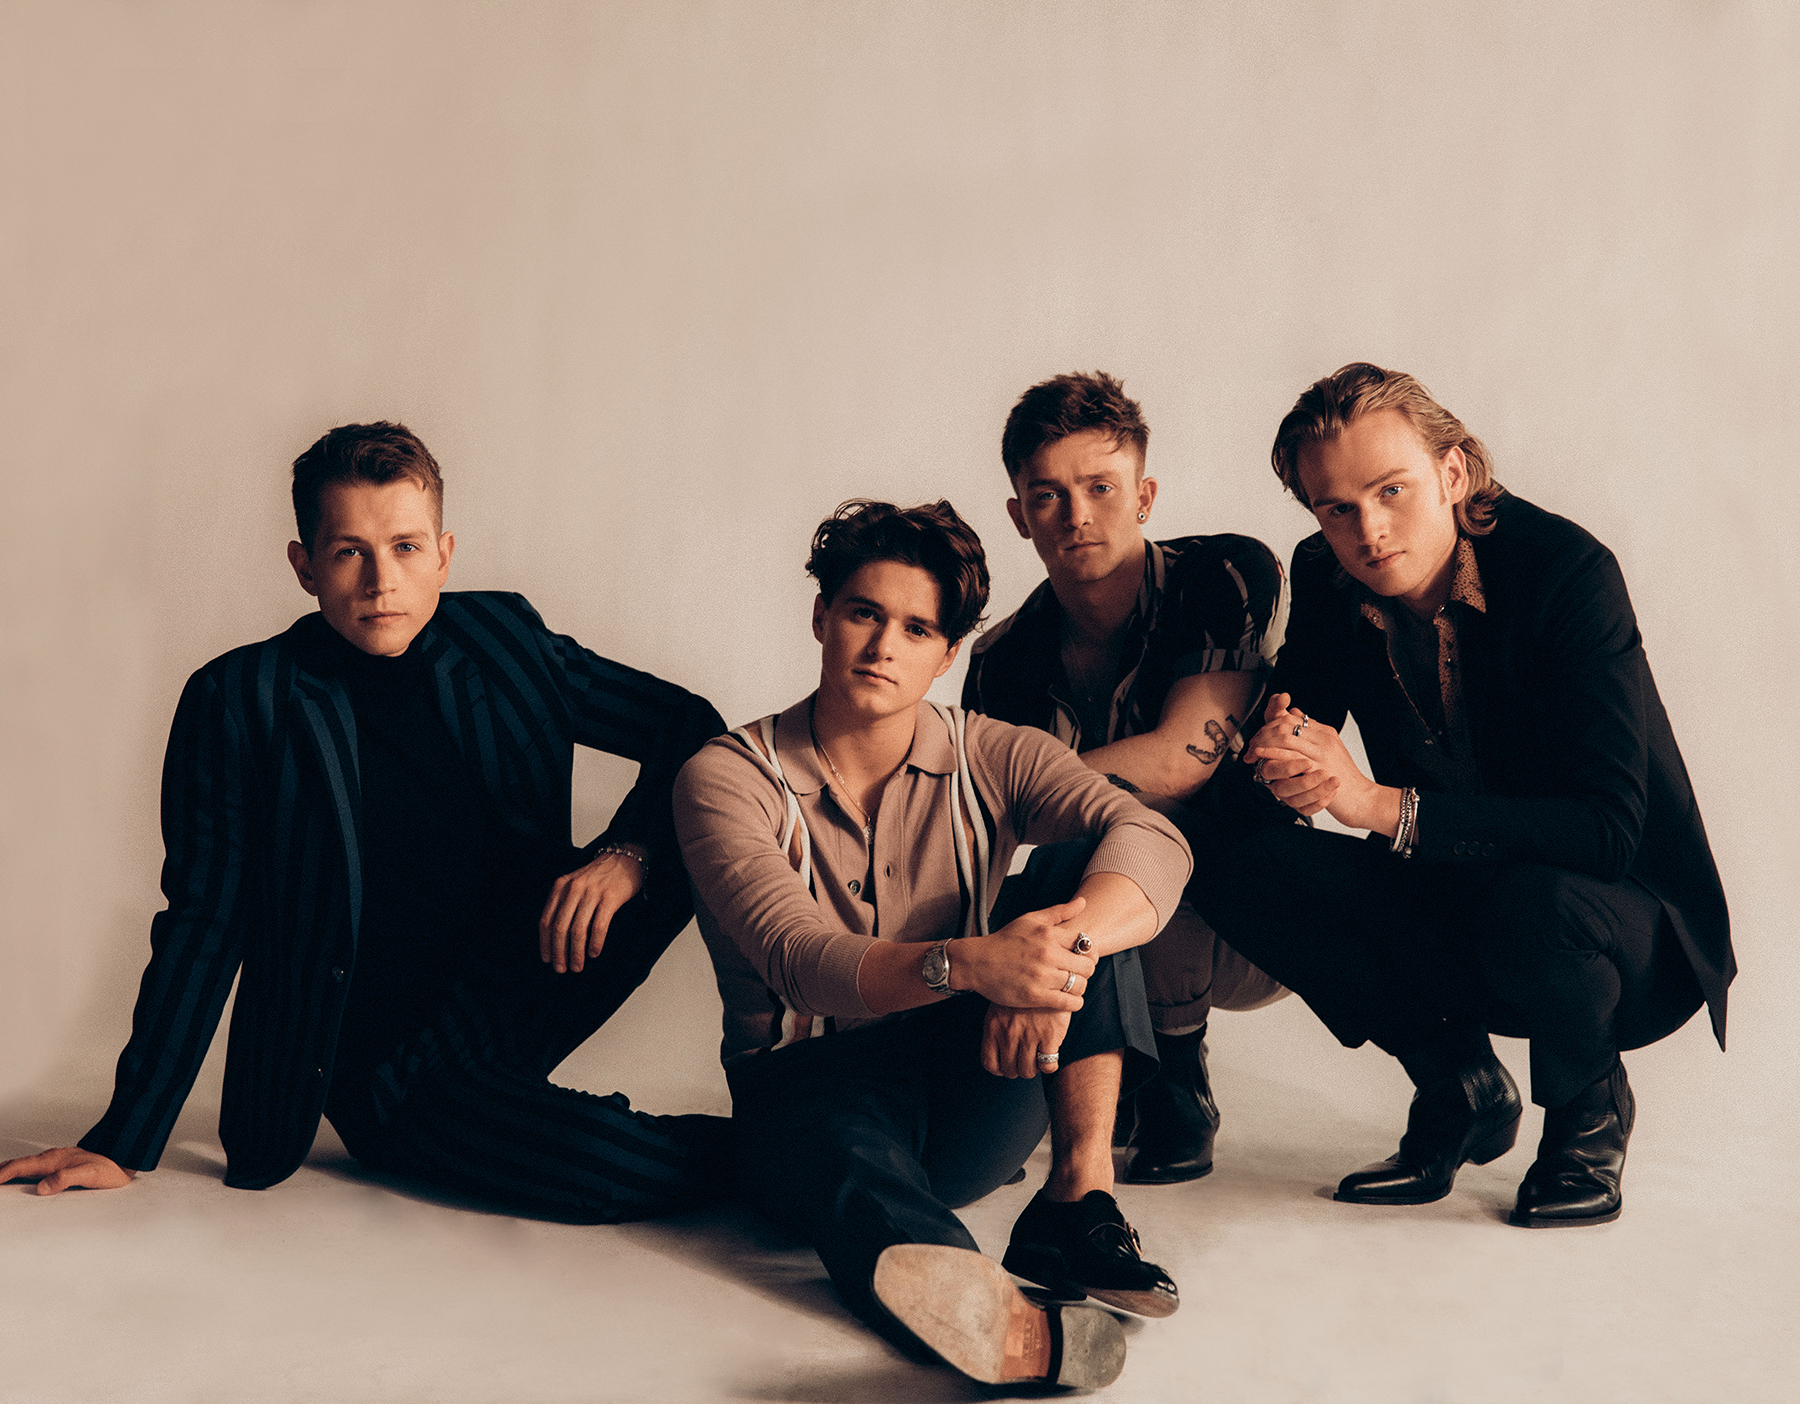 Vip tickets for our shows in uk the vamps vip tickets for our shows in uk and the rest of europe are almost sold out for tickets visit vampsvip m4hsunfo